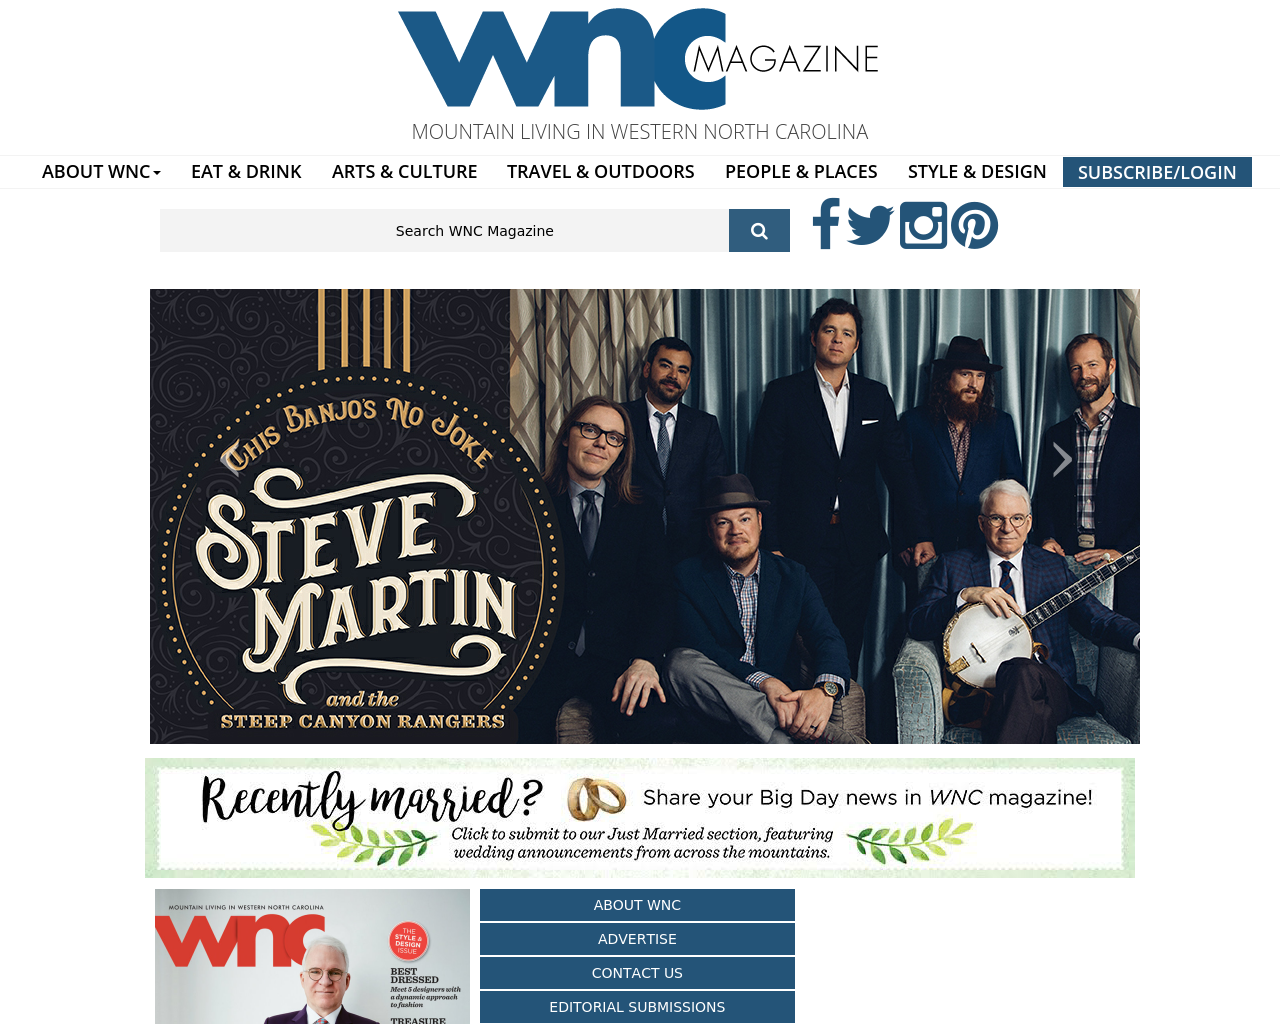 WNC-Magazine-Advertising-Reviews-Pricing